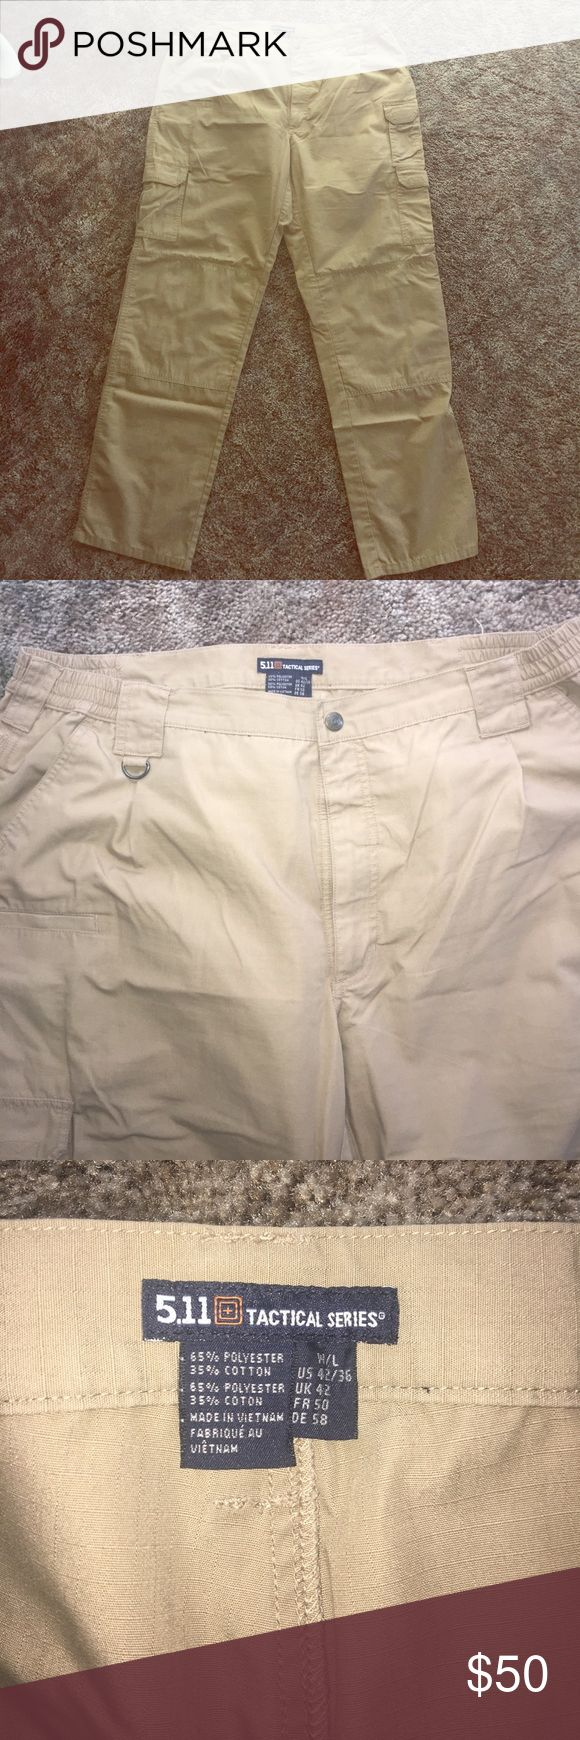 511 Tactical pants Men's 5.11 tactical pants. Khaki color, size 42/36, worn once, were too big. No flaws, great condition! 5.11 Tactical Pants